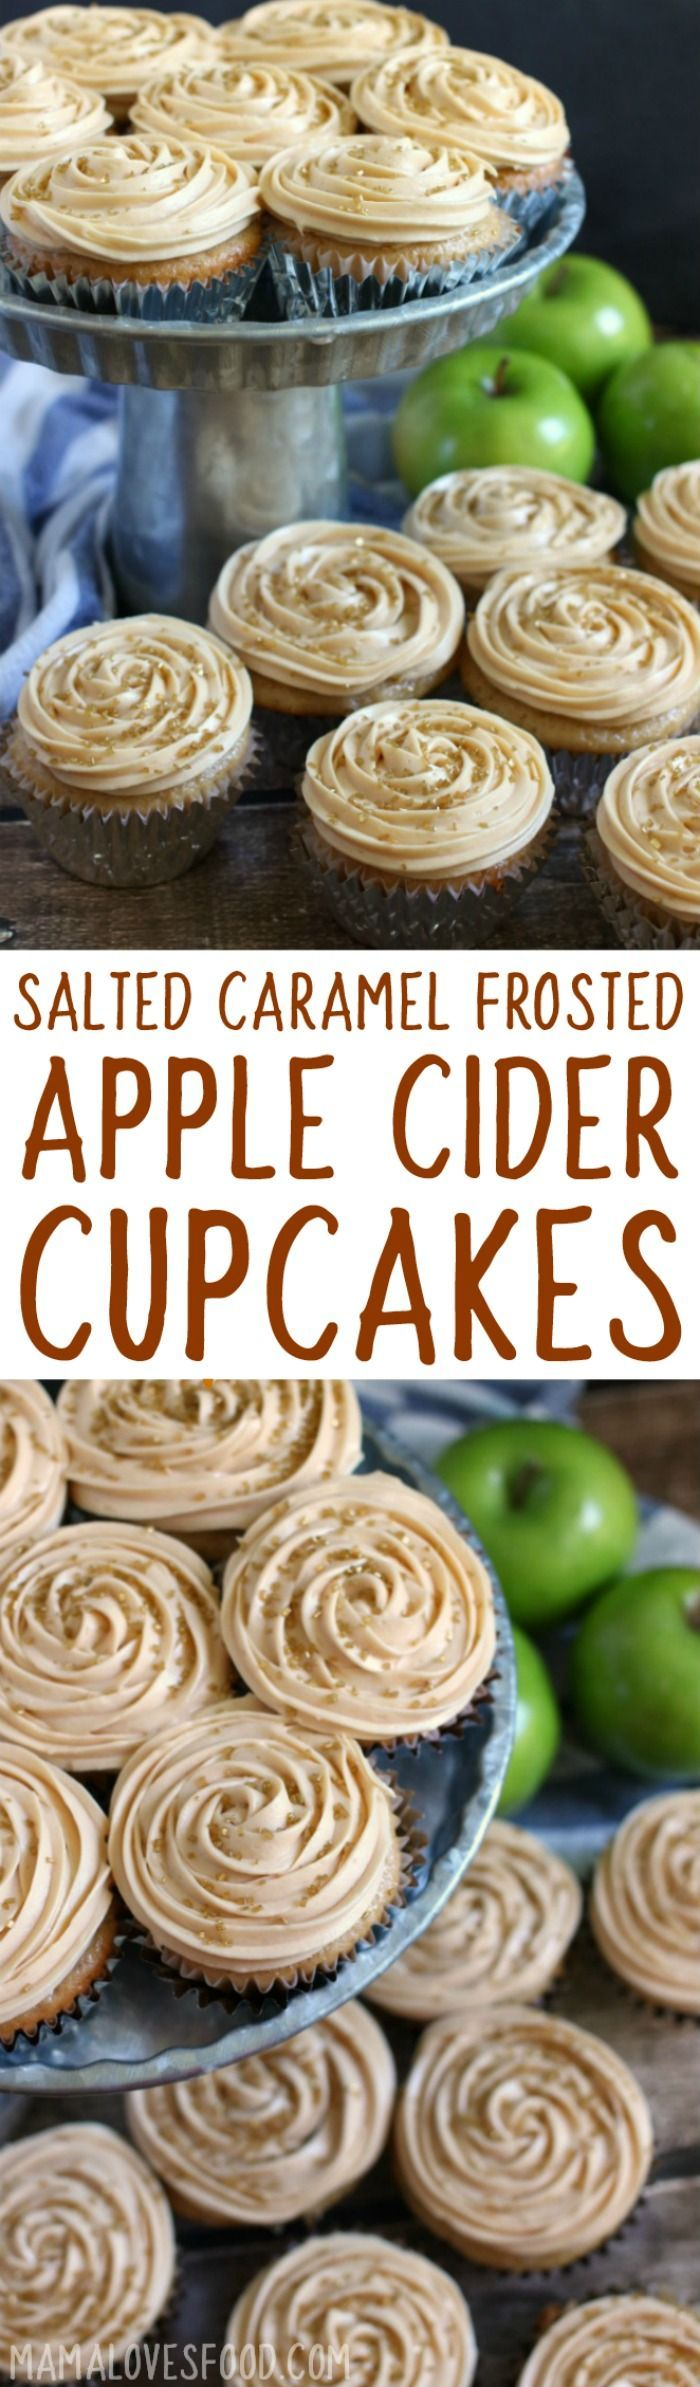 so easy! start with a box mix! Apple Cider Cupcakes with Salted Caramel Frosting is the perfect simple dessert recipe to celebrate the fall season. Make them with your kids!